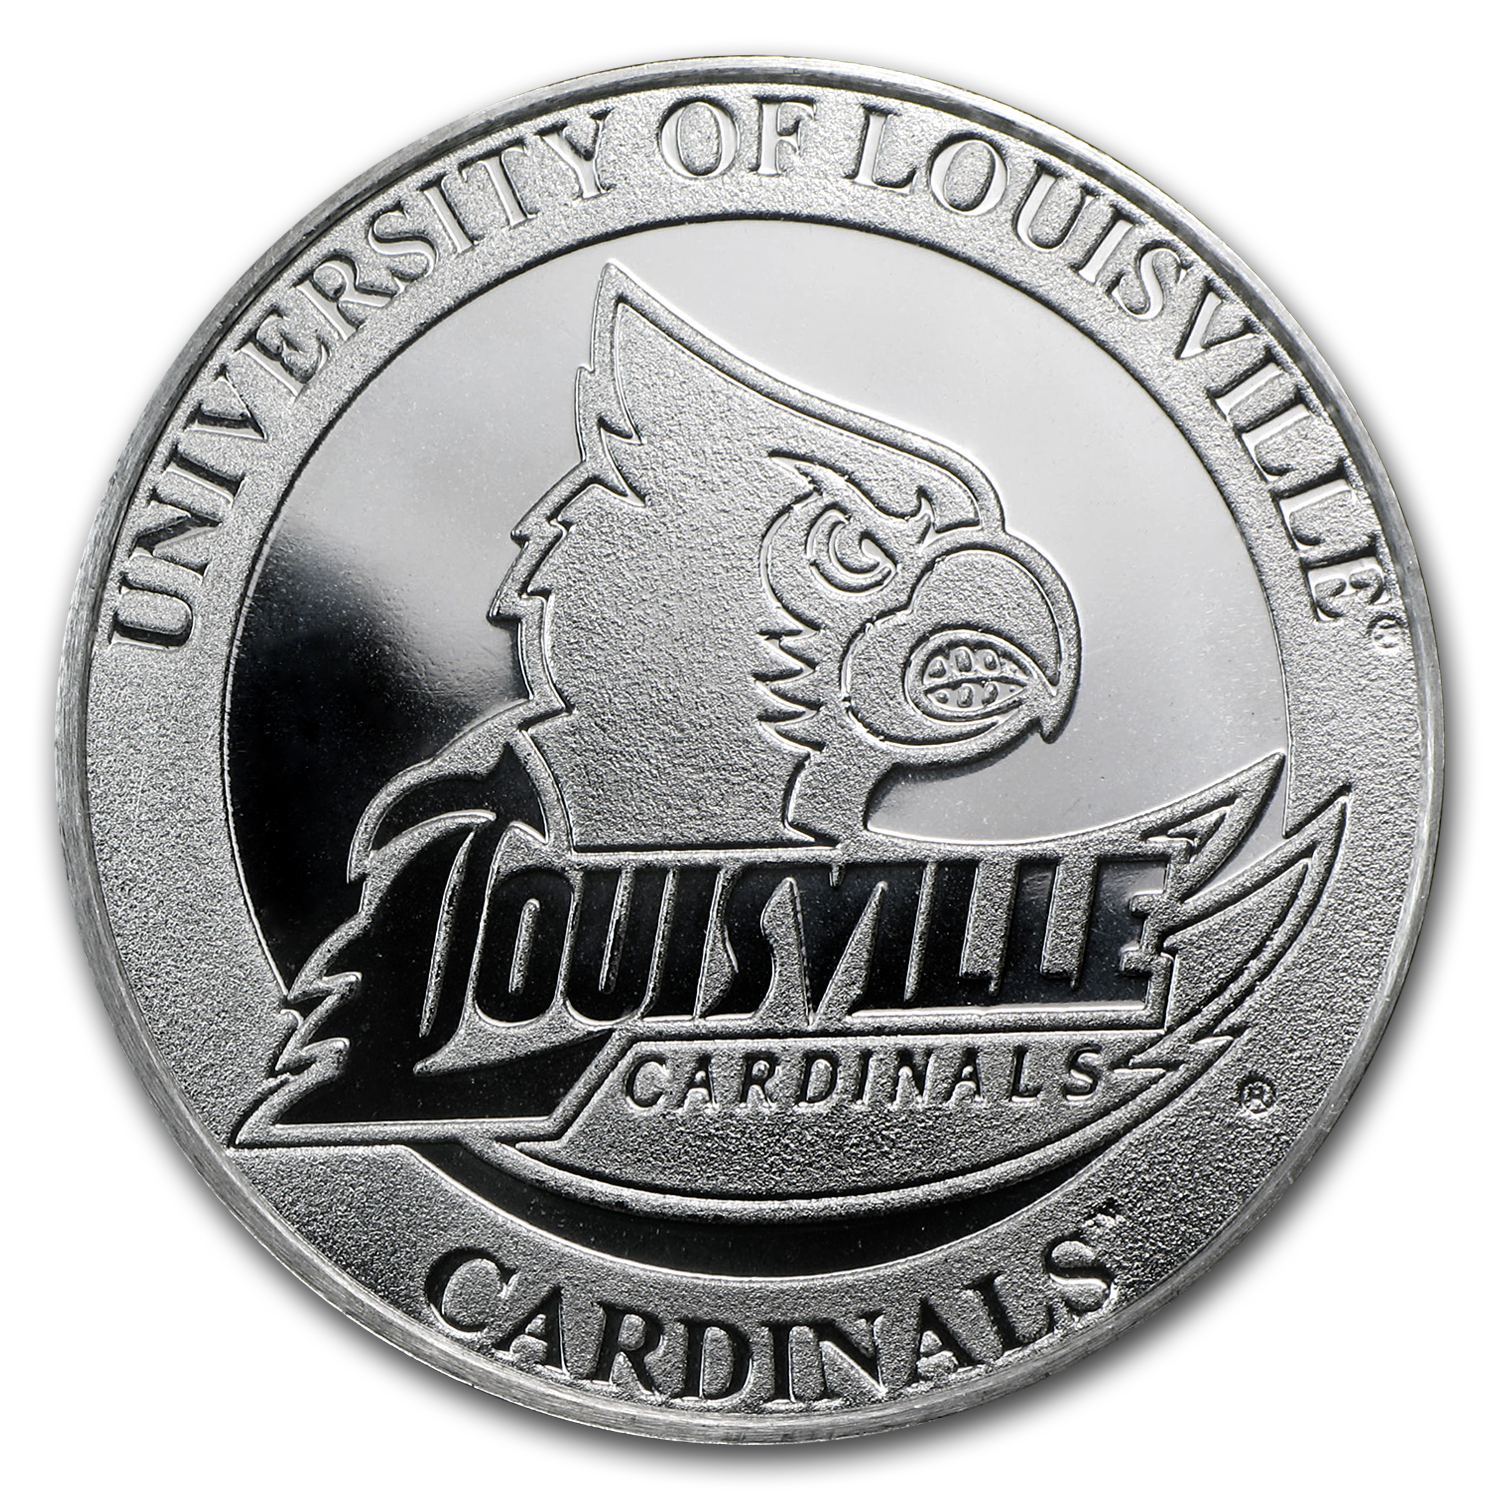 1 oz Silver Round - University of Louisville